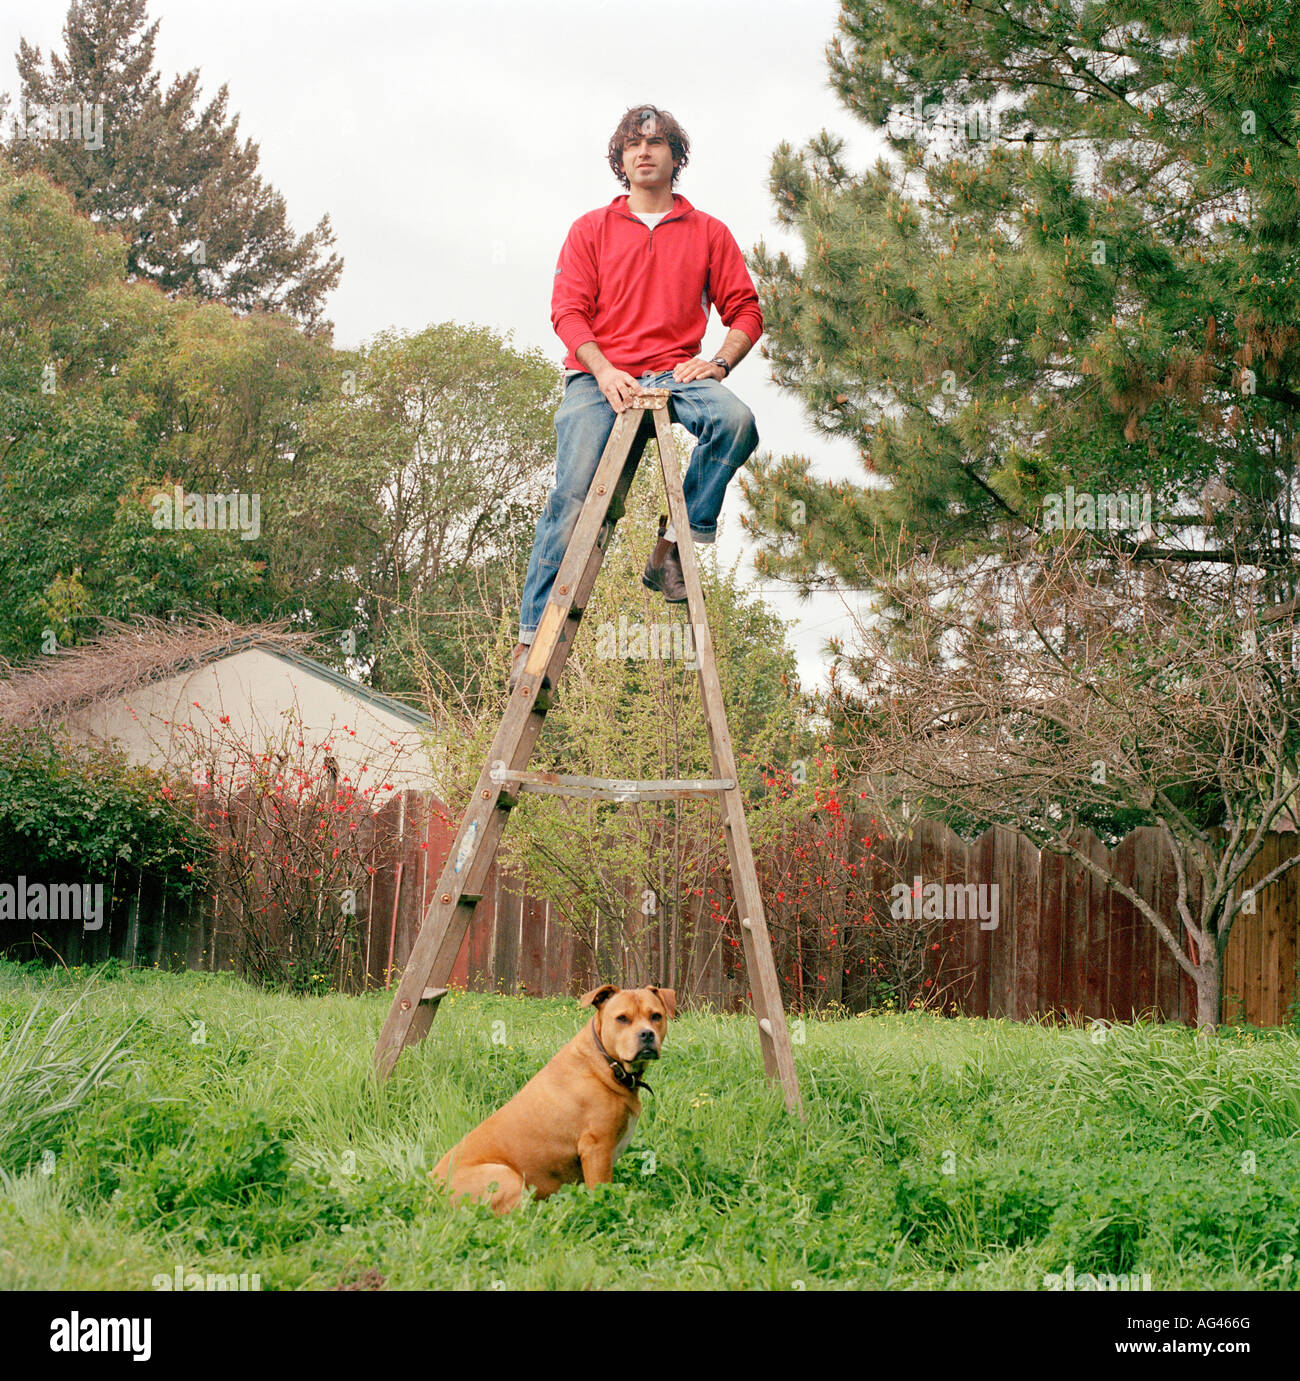 man standing on a ladder in his backyard with his dog sitting on